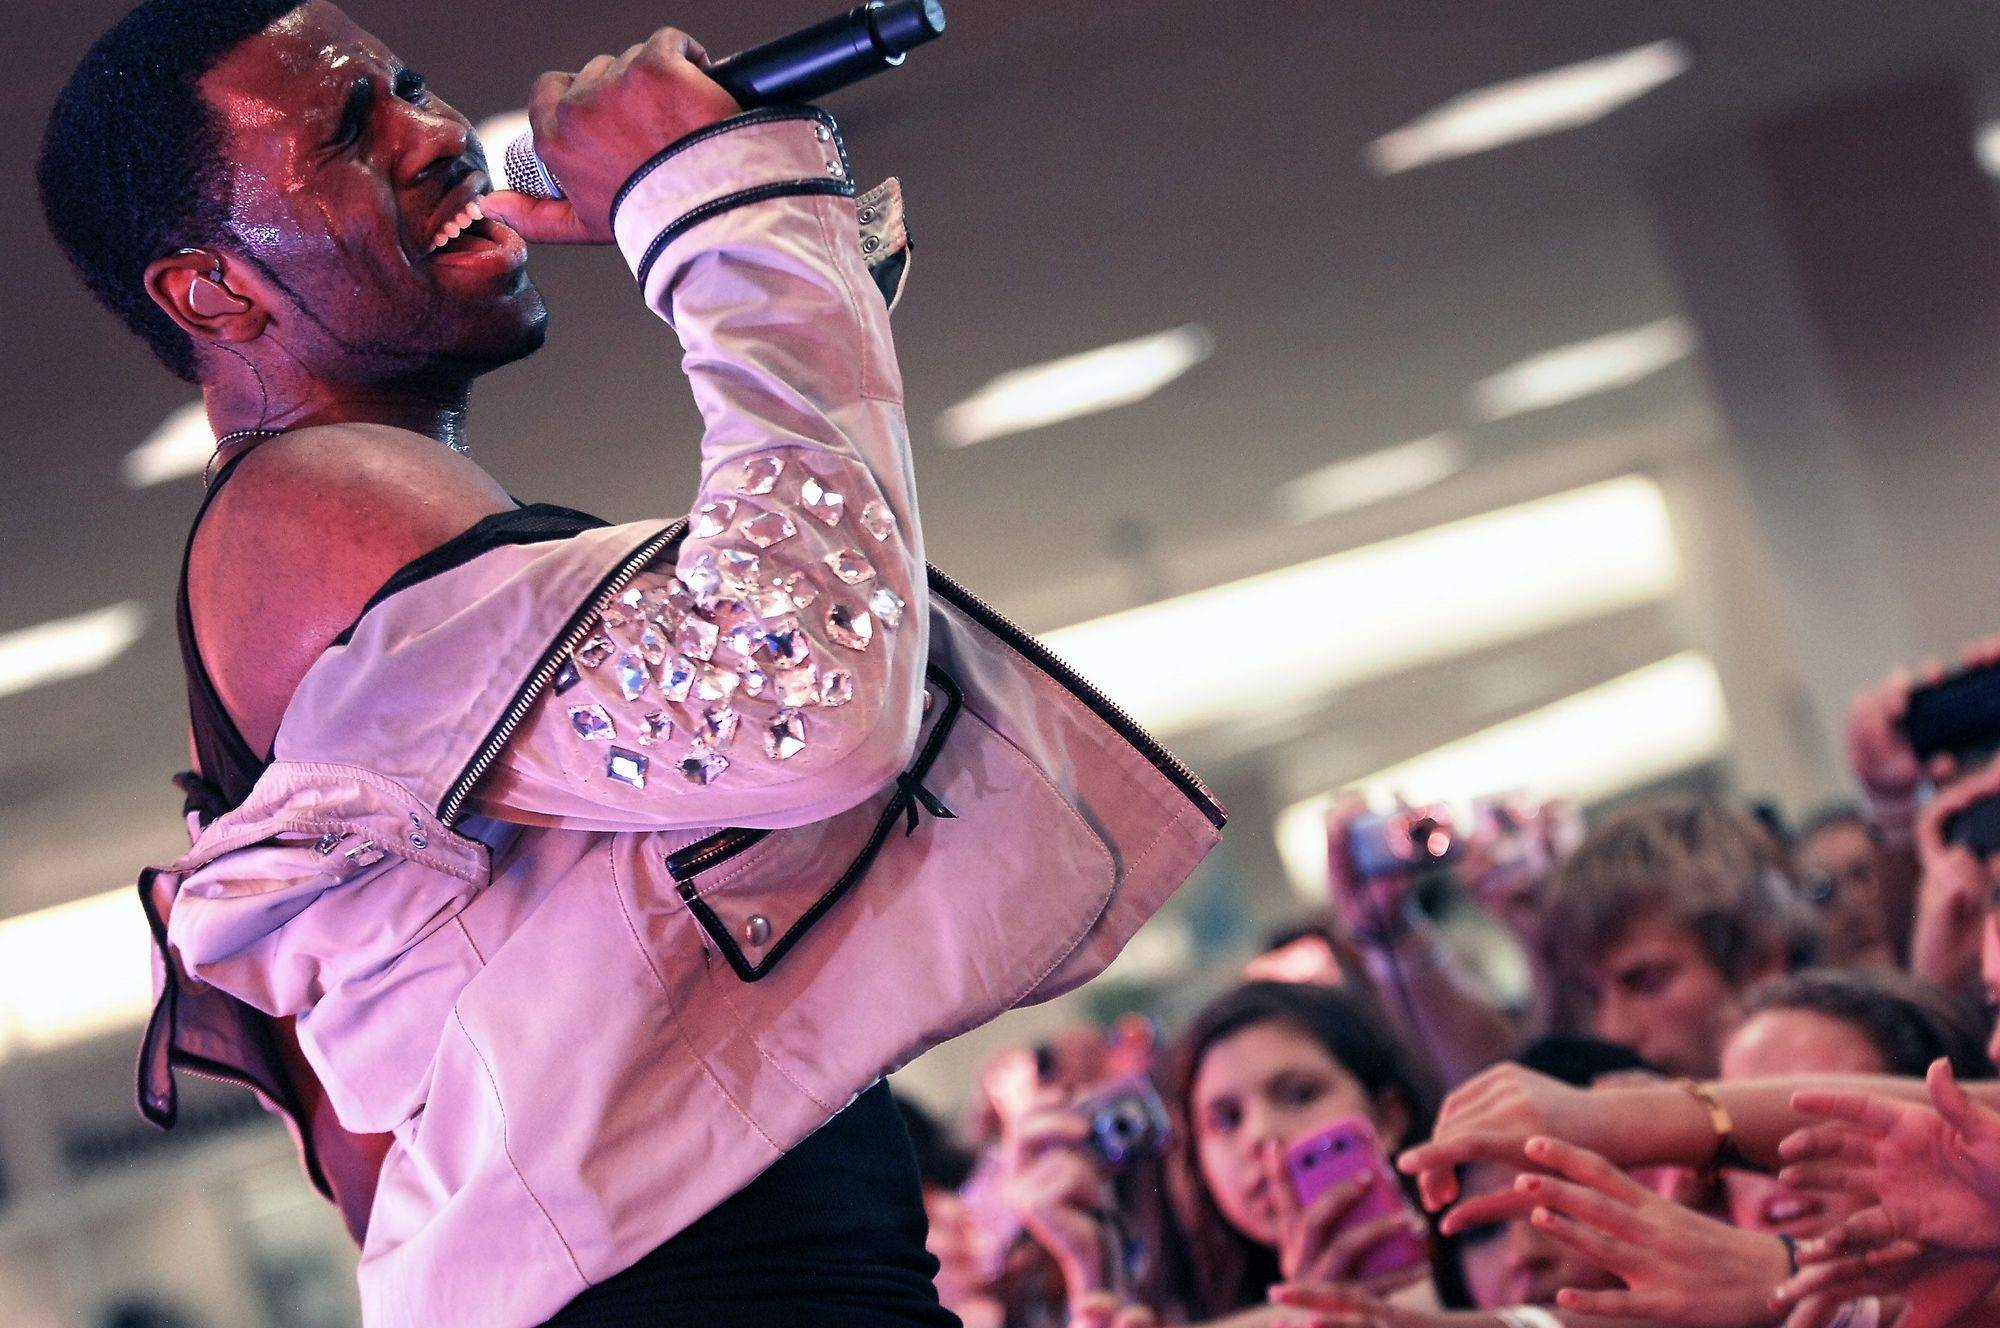 Pop singing sensation Jason Derulo gives a free concert at Sears in Woodfield Mall to fans who auditioned to become one of twenty Rock the Scene VIP style reporters.